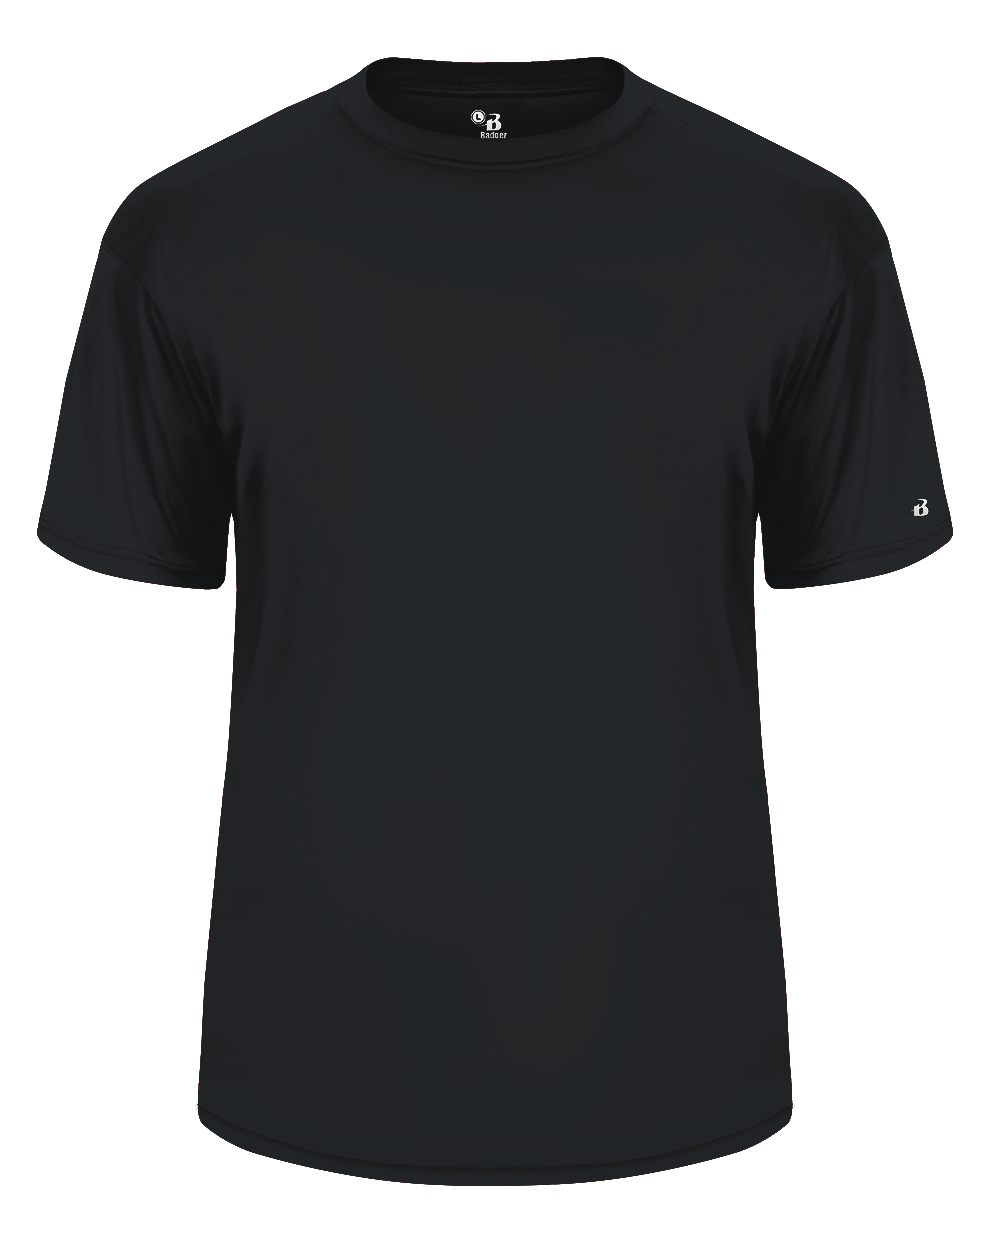 B-Core Youth Tee - Black